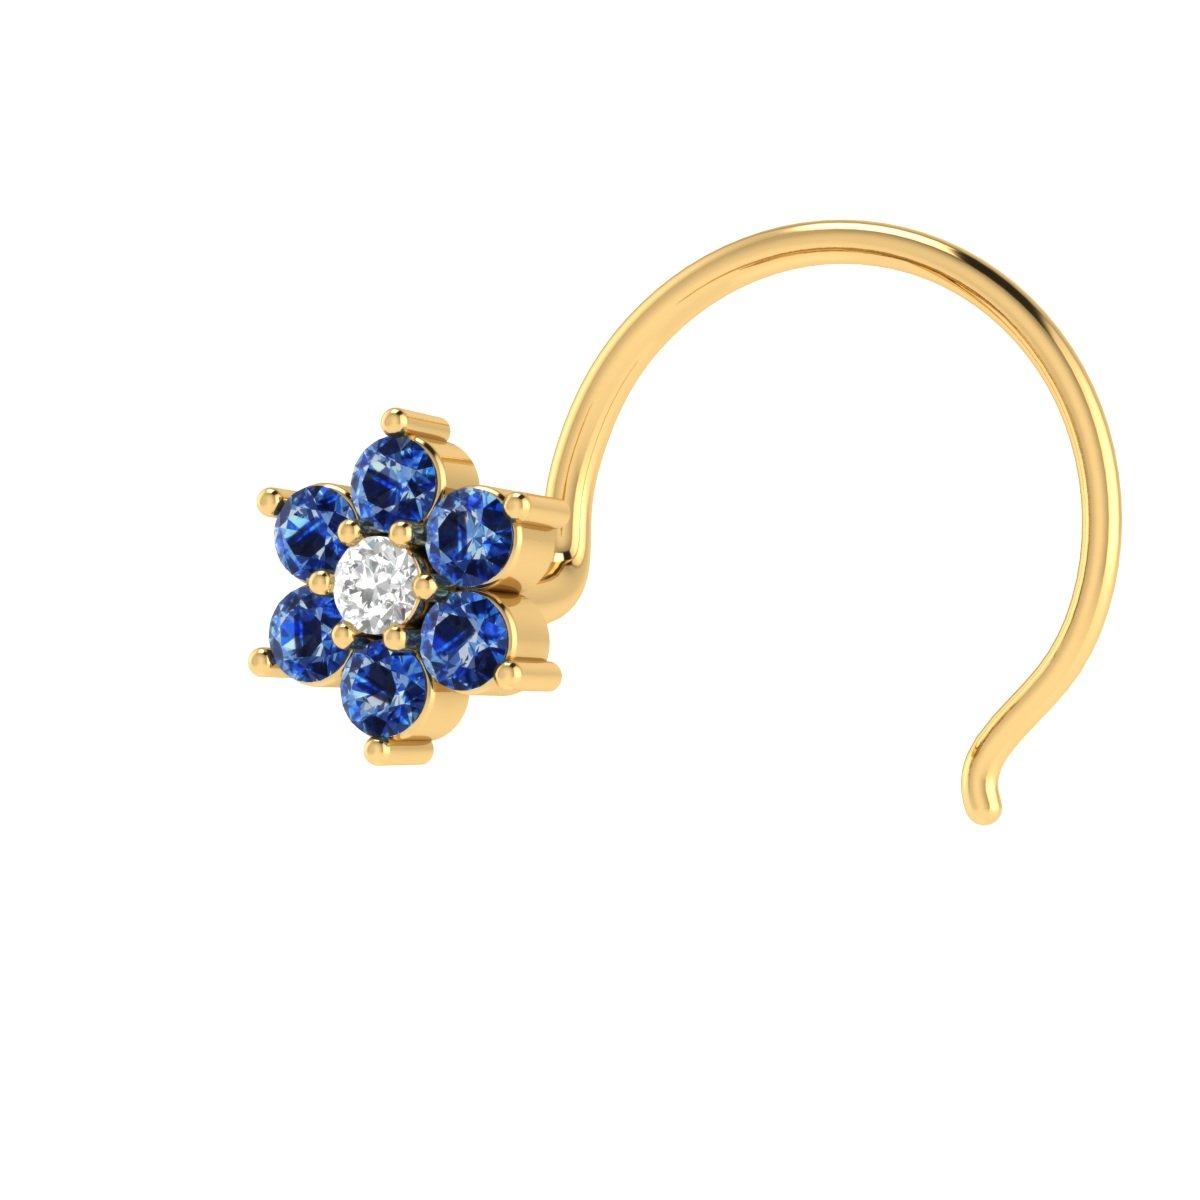 Demira Jewels 14k Yellow Gold Real Blue Sapphire and Diamond Flower Wedding Nose Piercing Ring Stud Pin